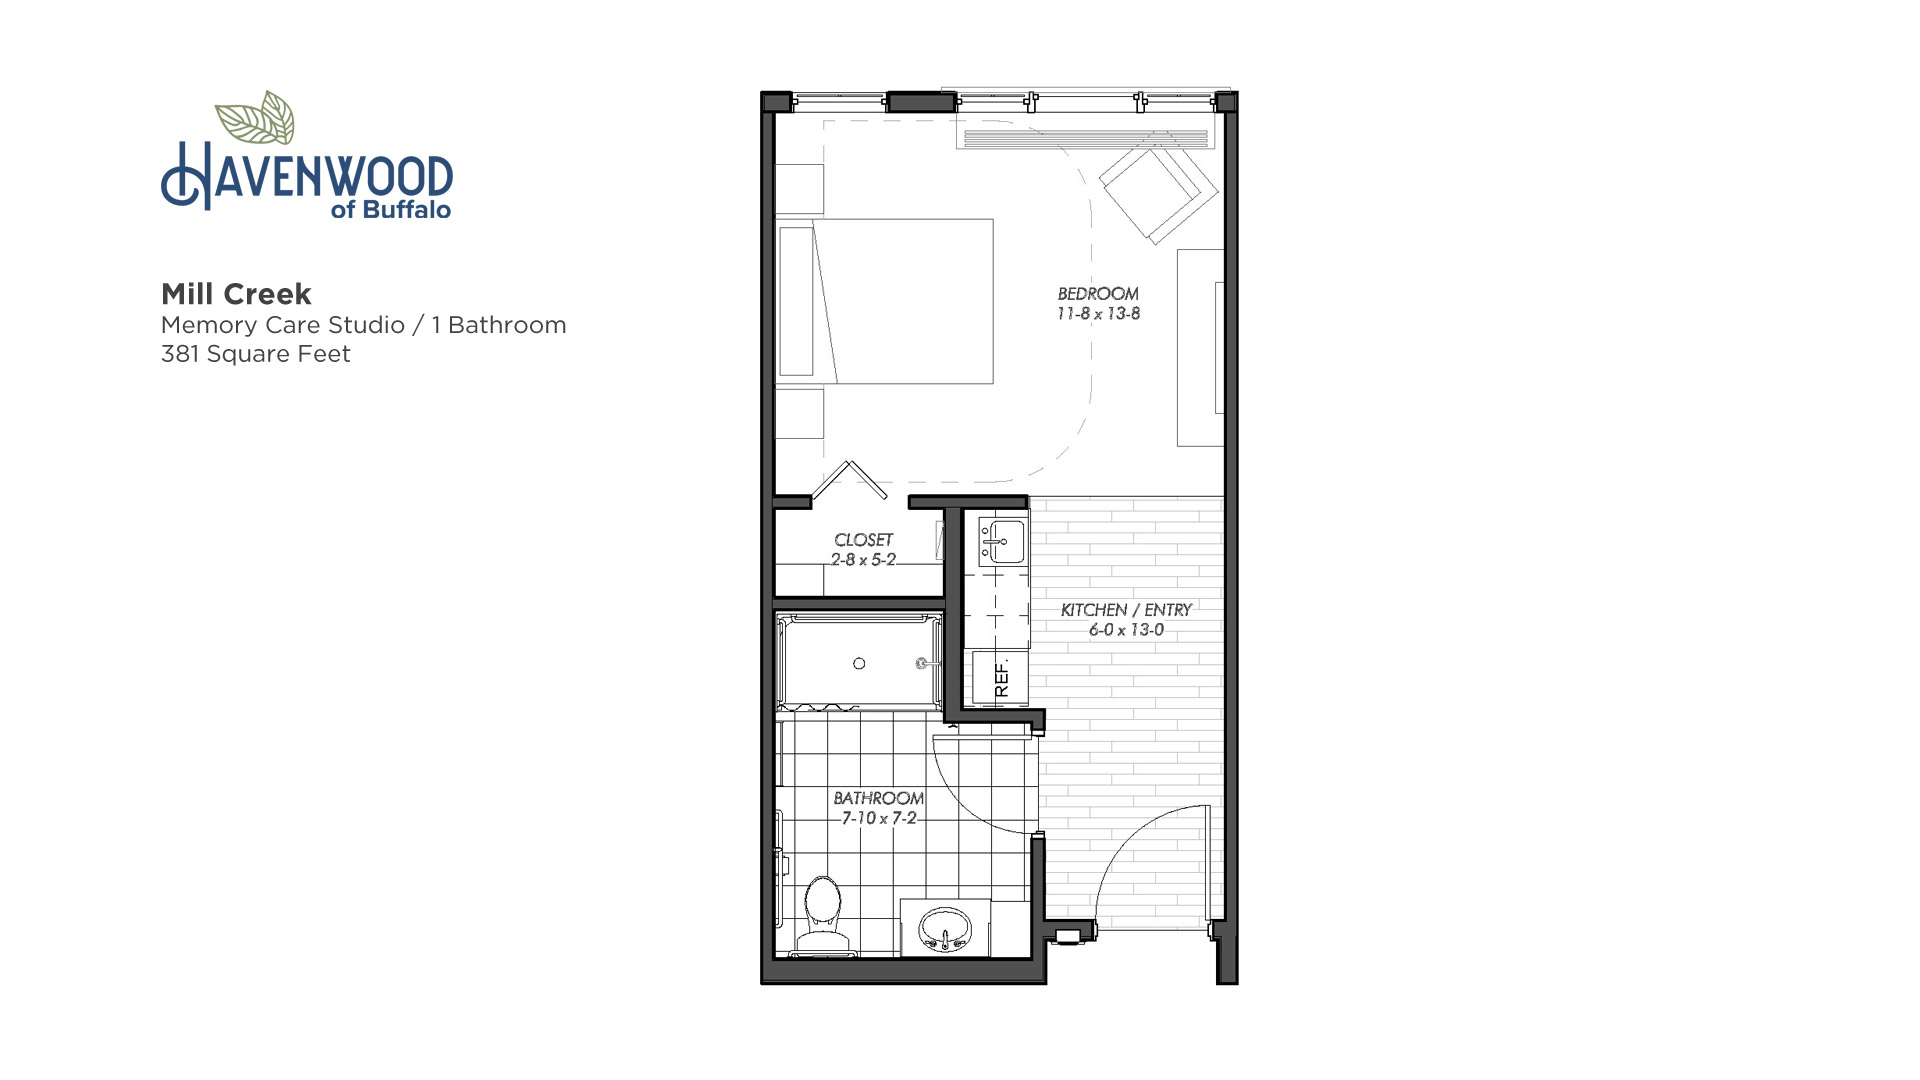 Havenwood of Buffalo Mill Creek Floor Plan